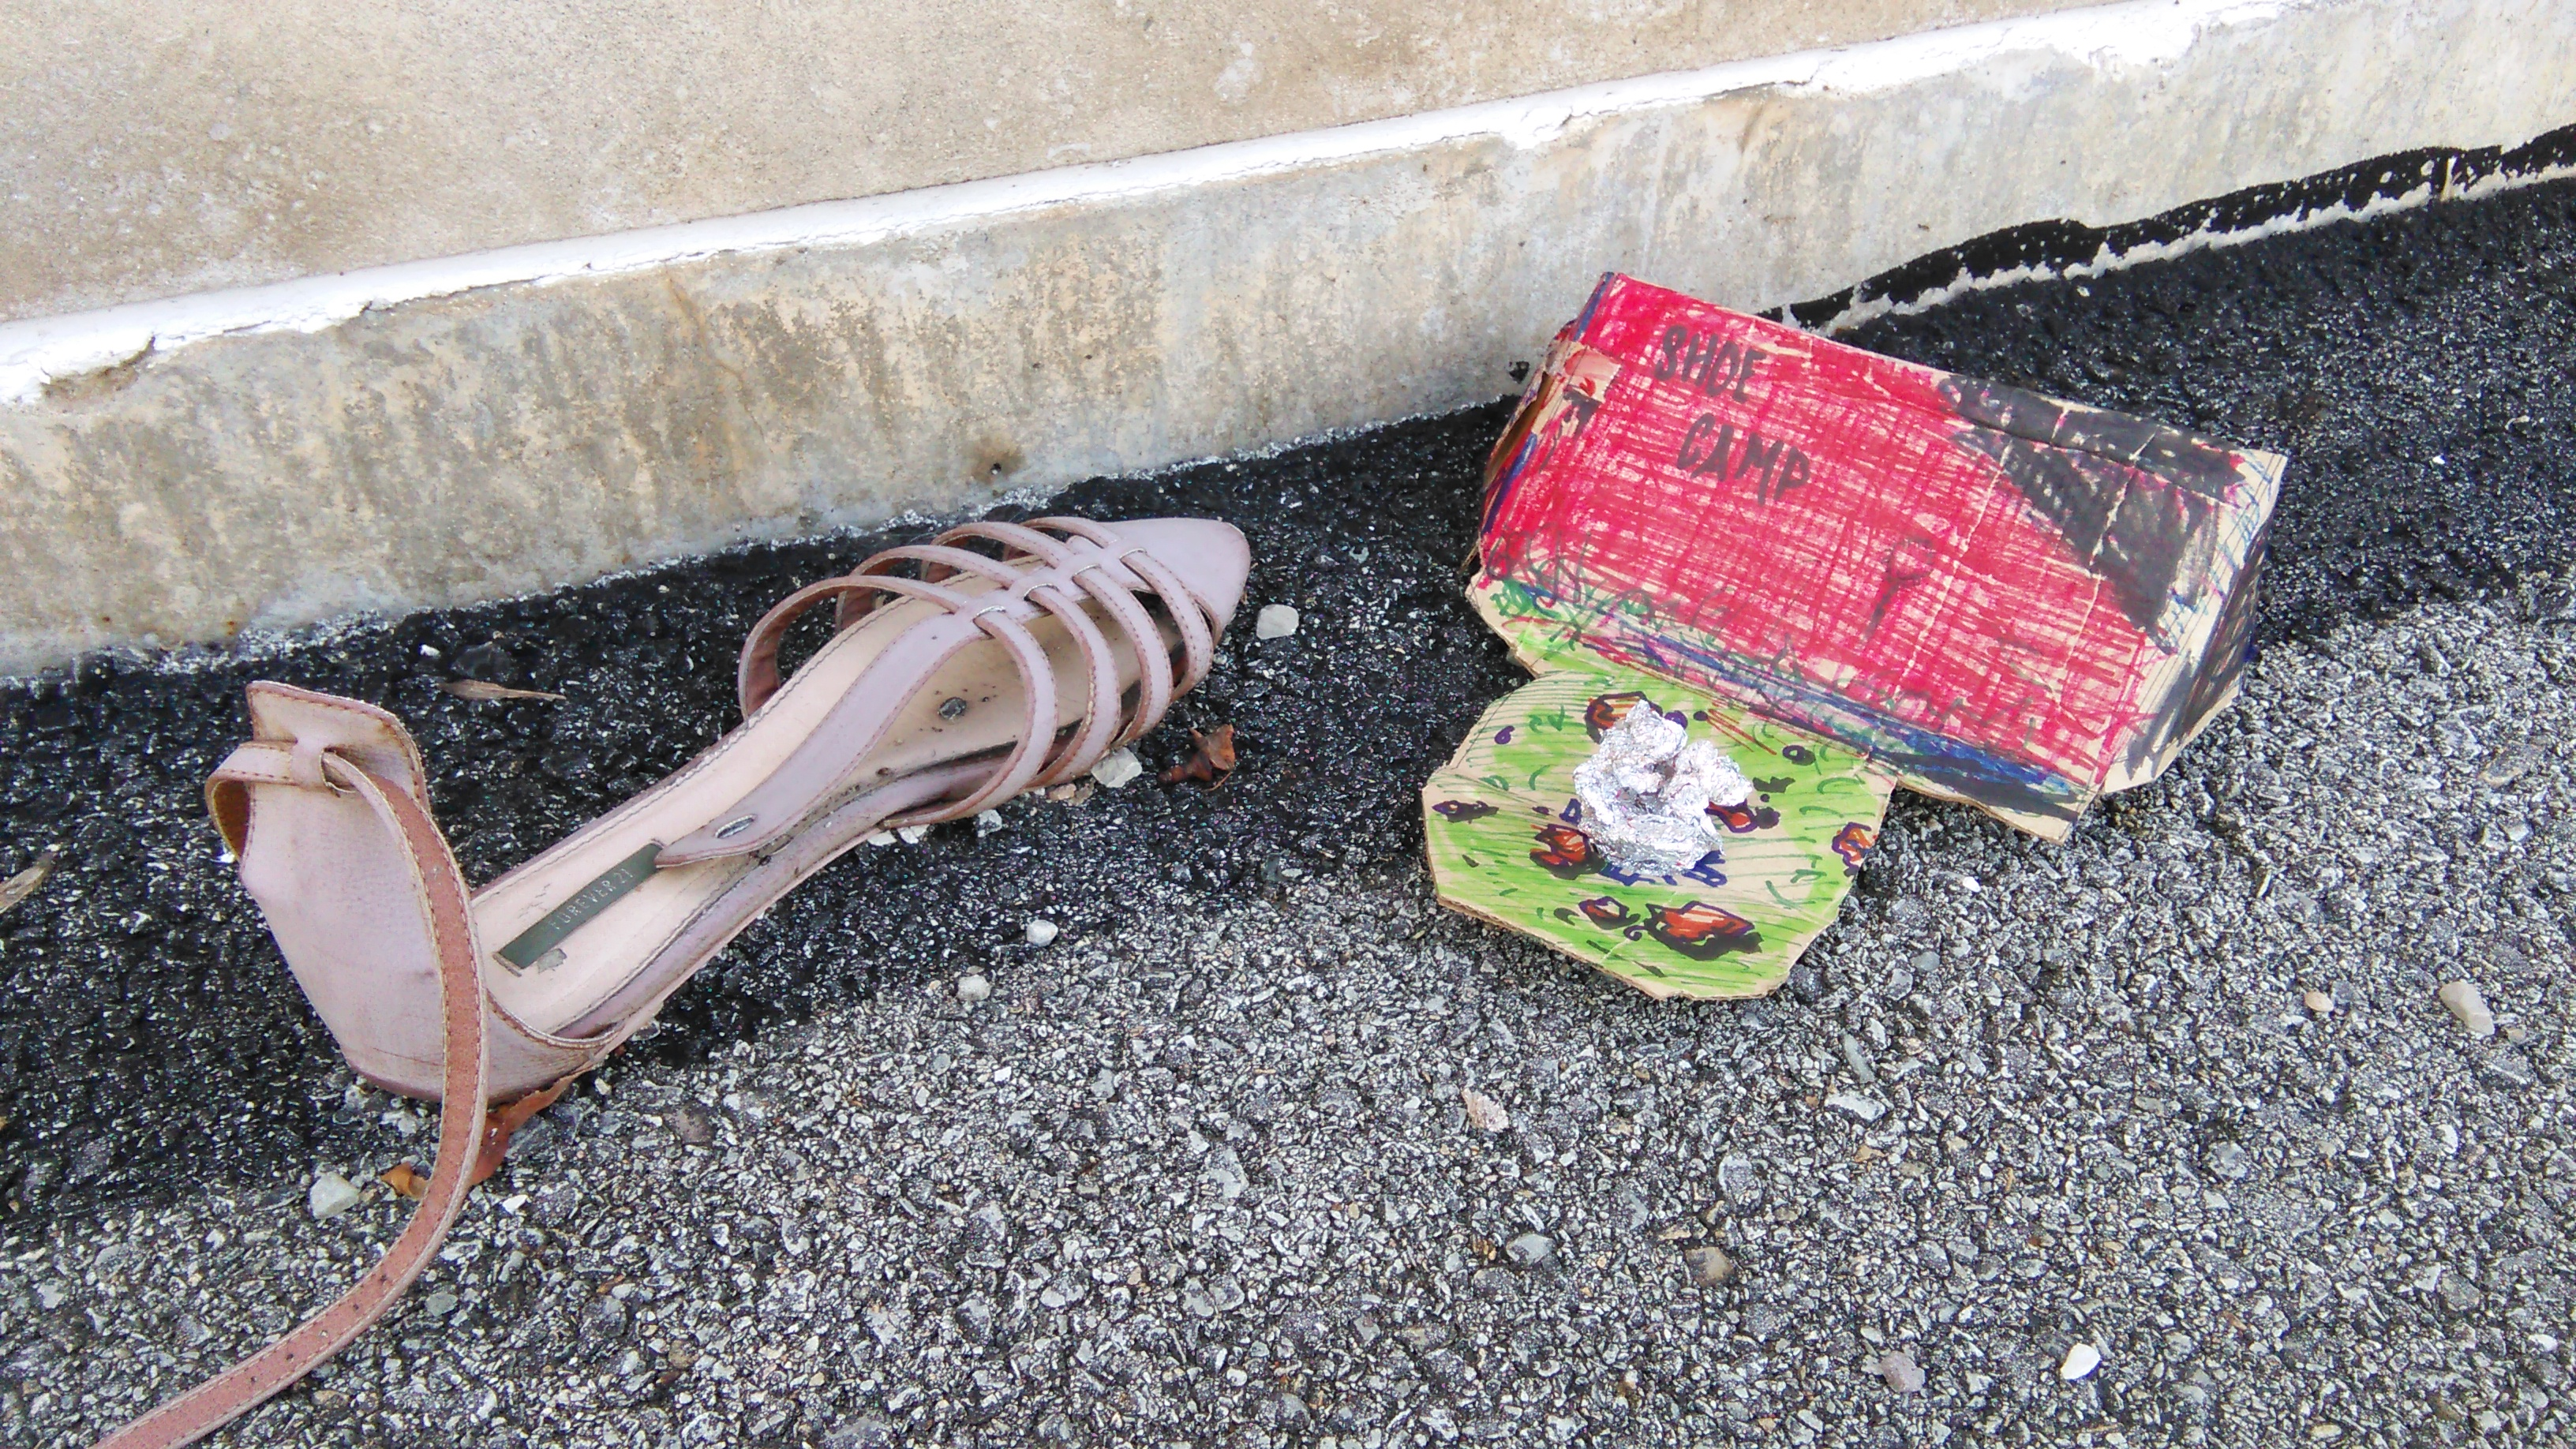 Empathy test for abandoned shoe – Fifty State Banana